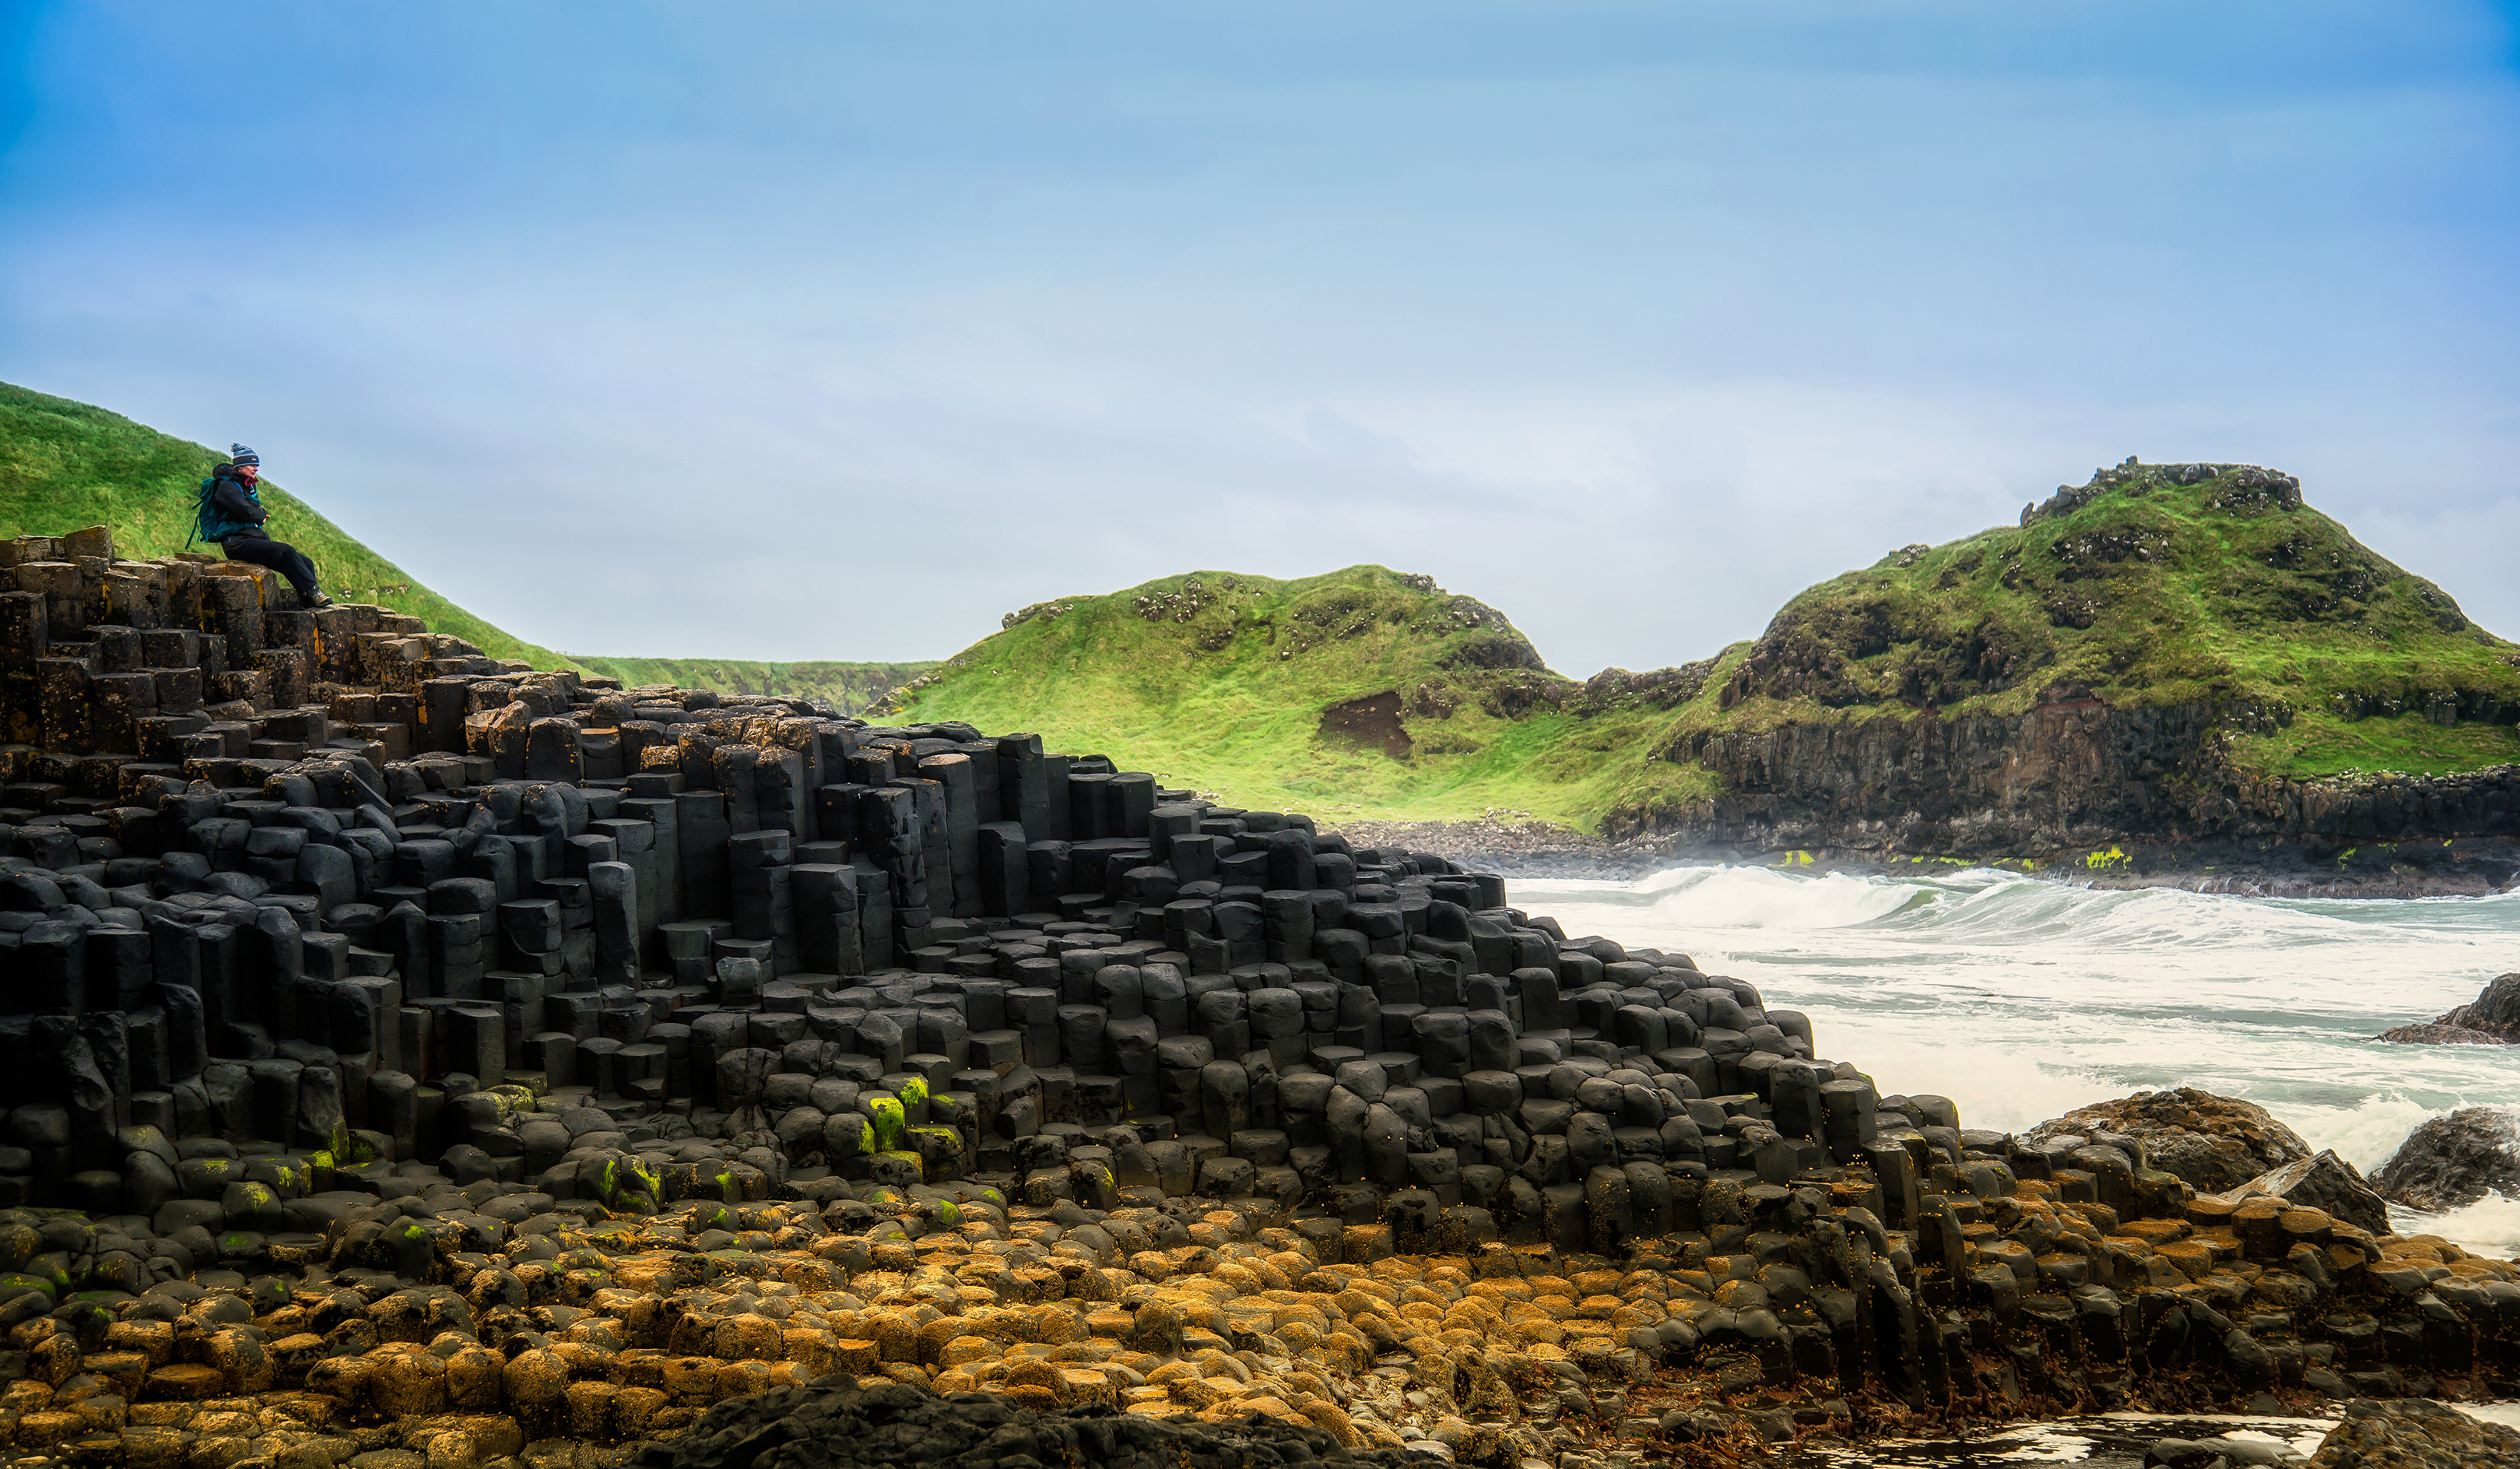 Contemplation at Giant's Causeway